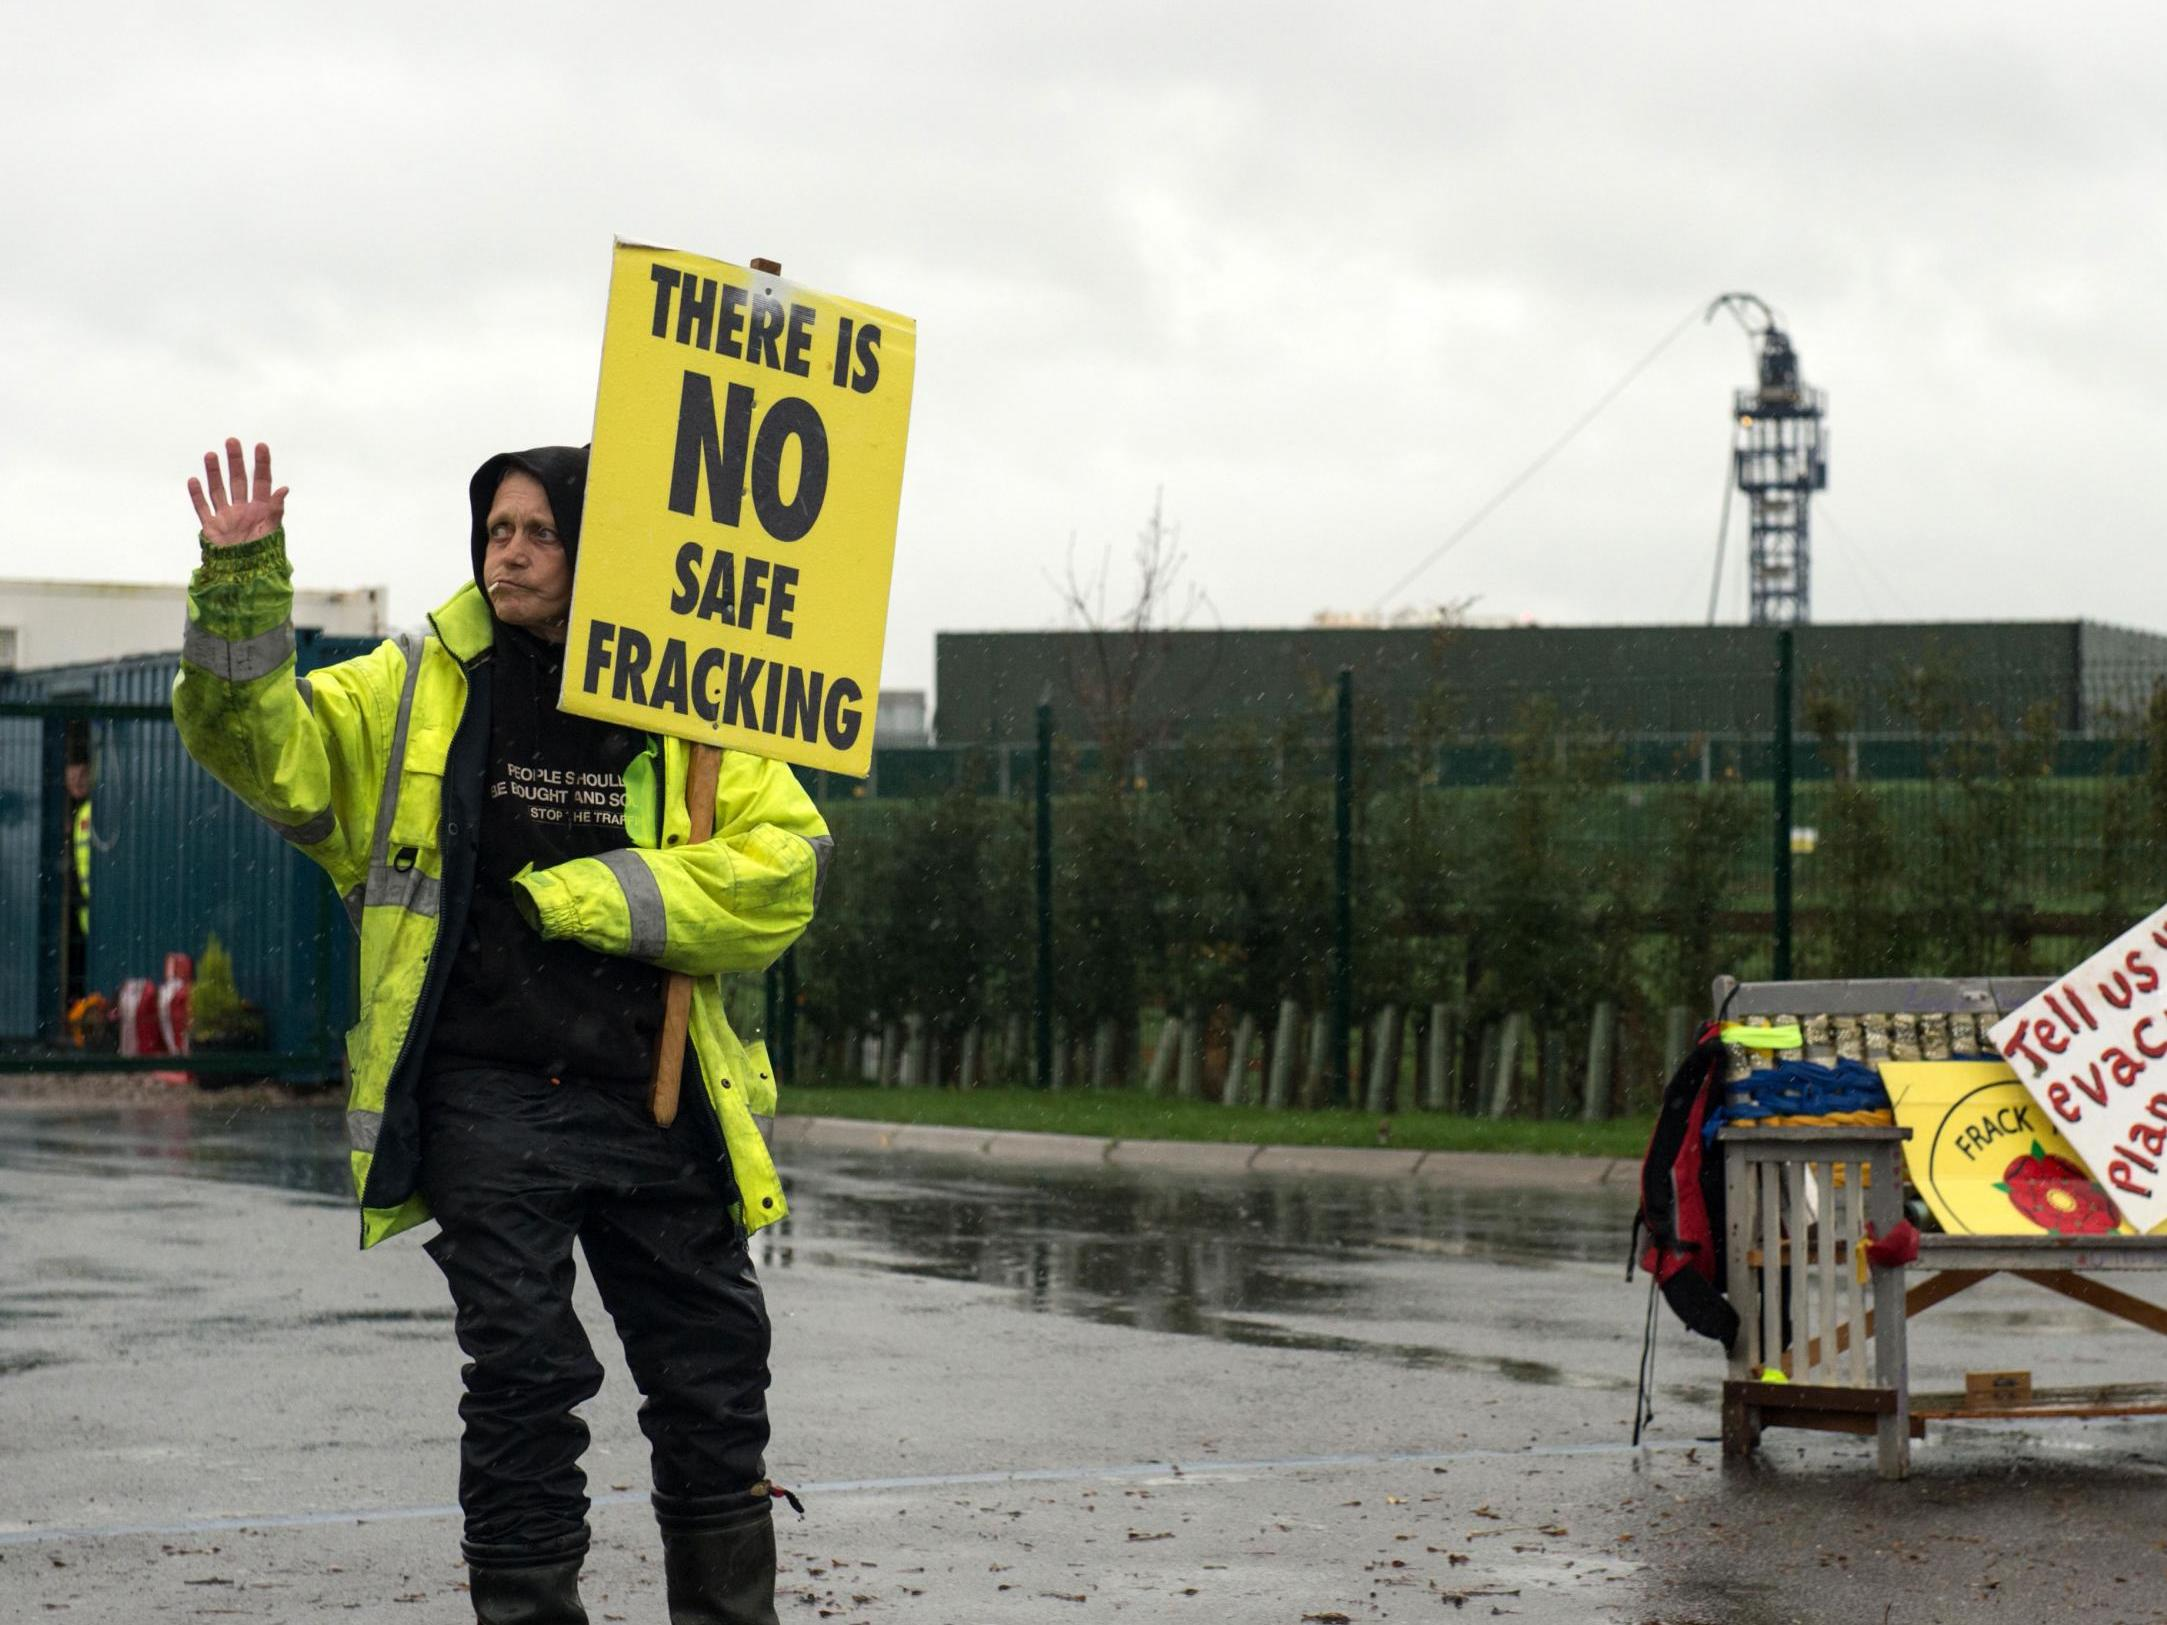 Activists launch another legal challenge against Cuadrilla fracking permit in High Court